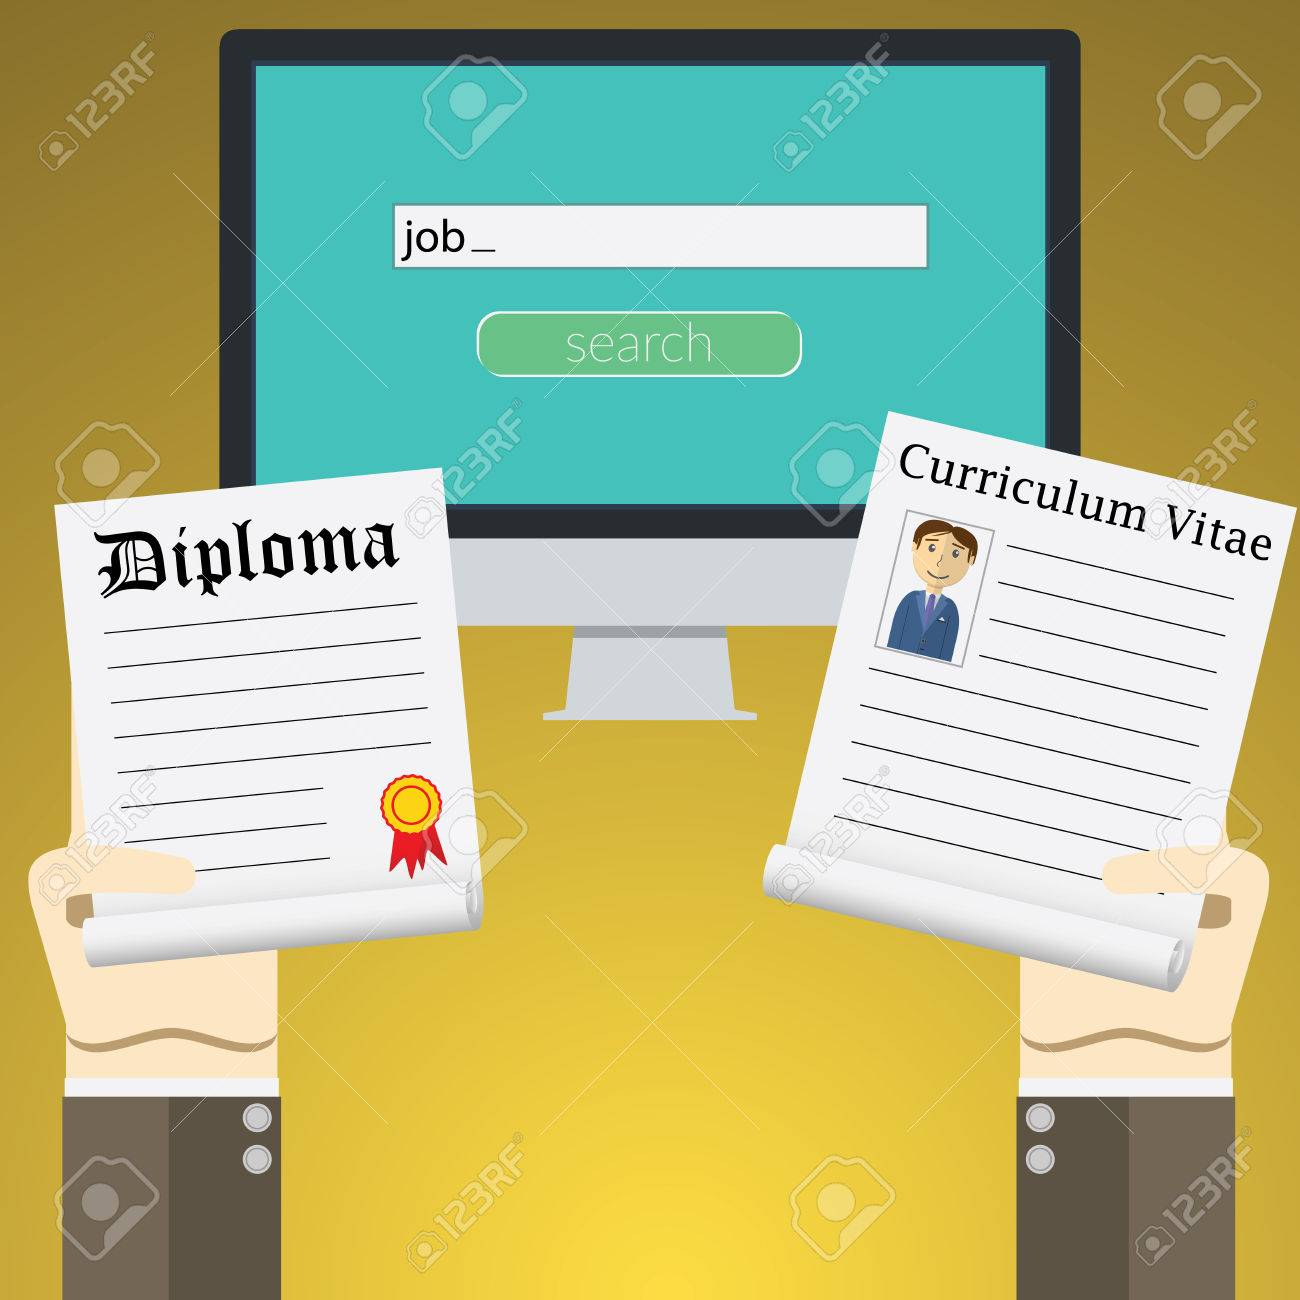 flat design illustration concept for online job search on computer flat design illustration concept for online job search on computer concepts of hands holding diploma